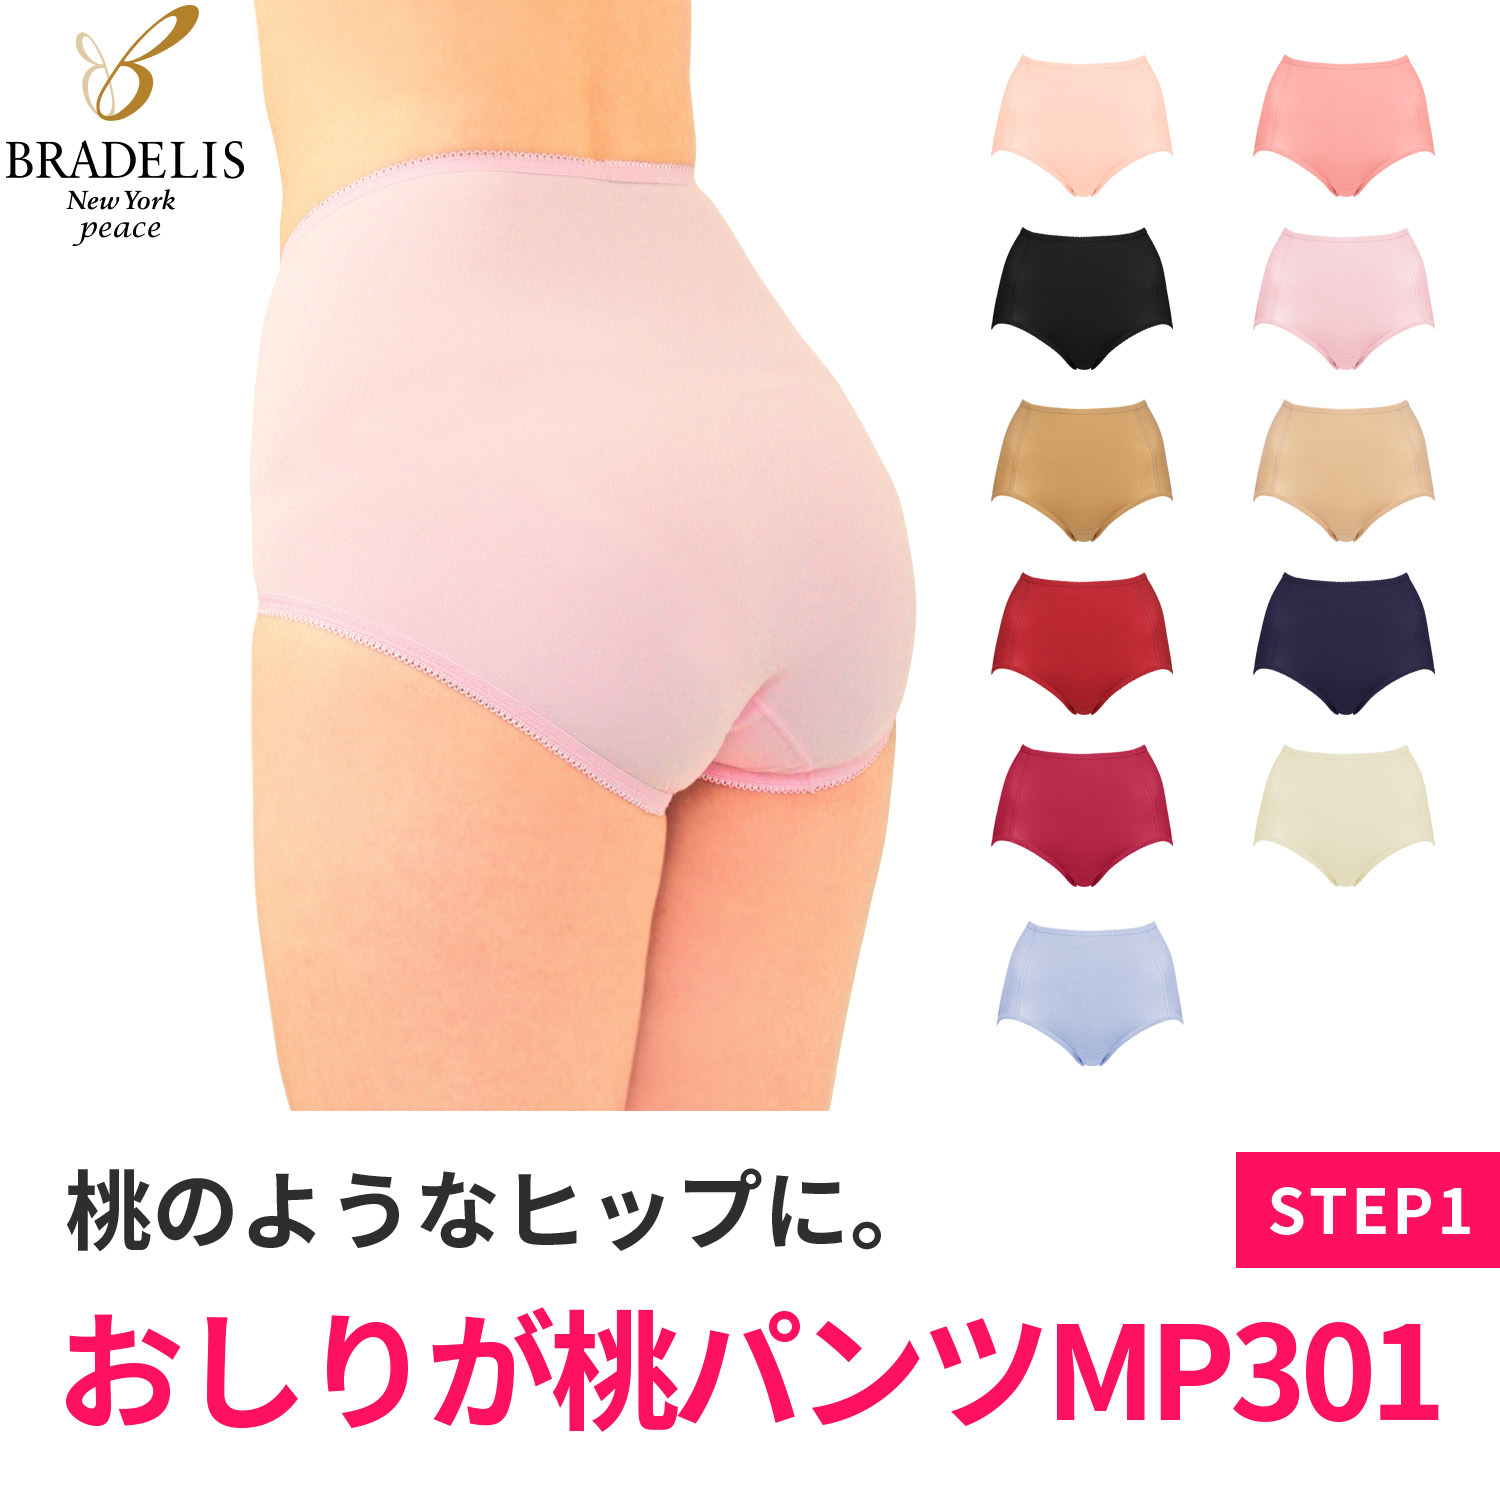 a71183c0d0a7 fit to viewer. prev next. BRADELIS NEW YORK New posterior peach pants ...